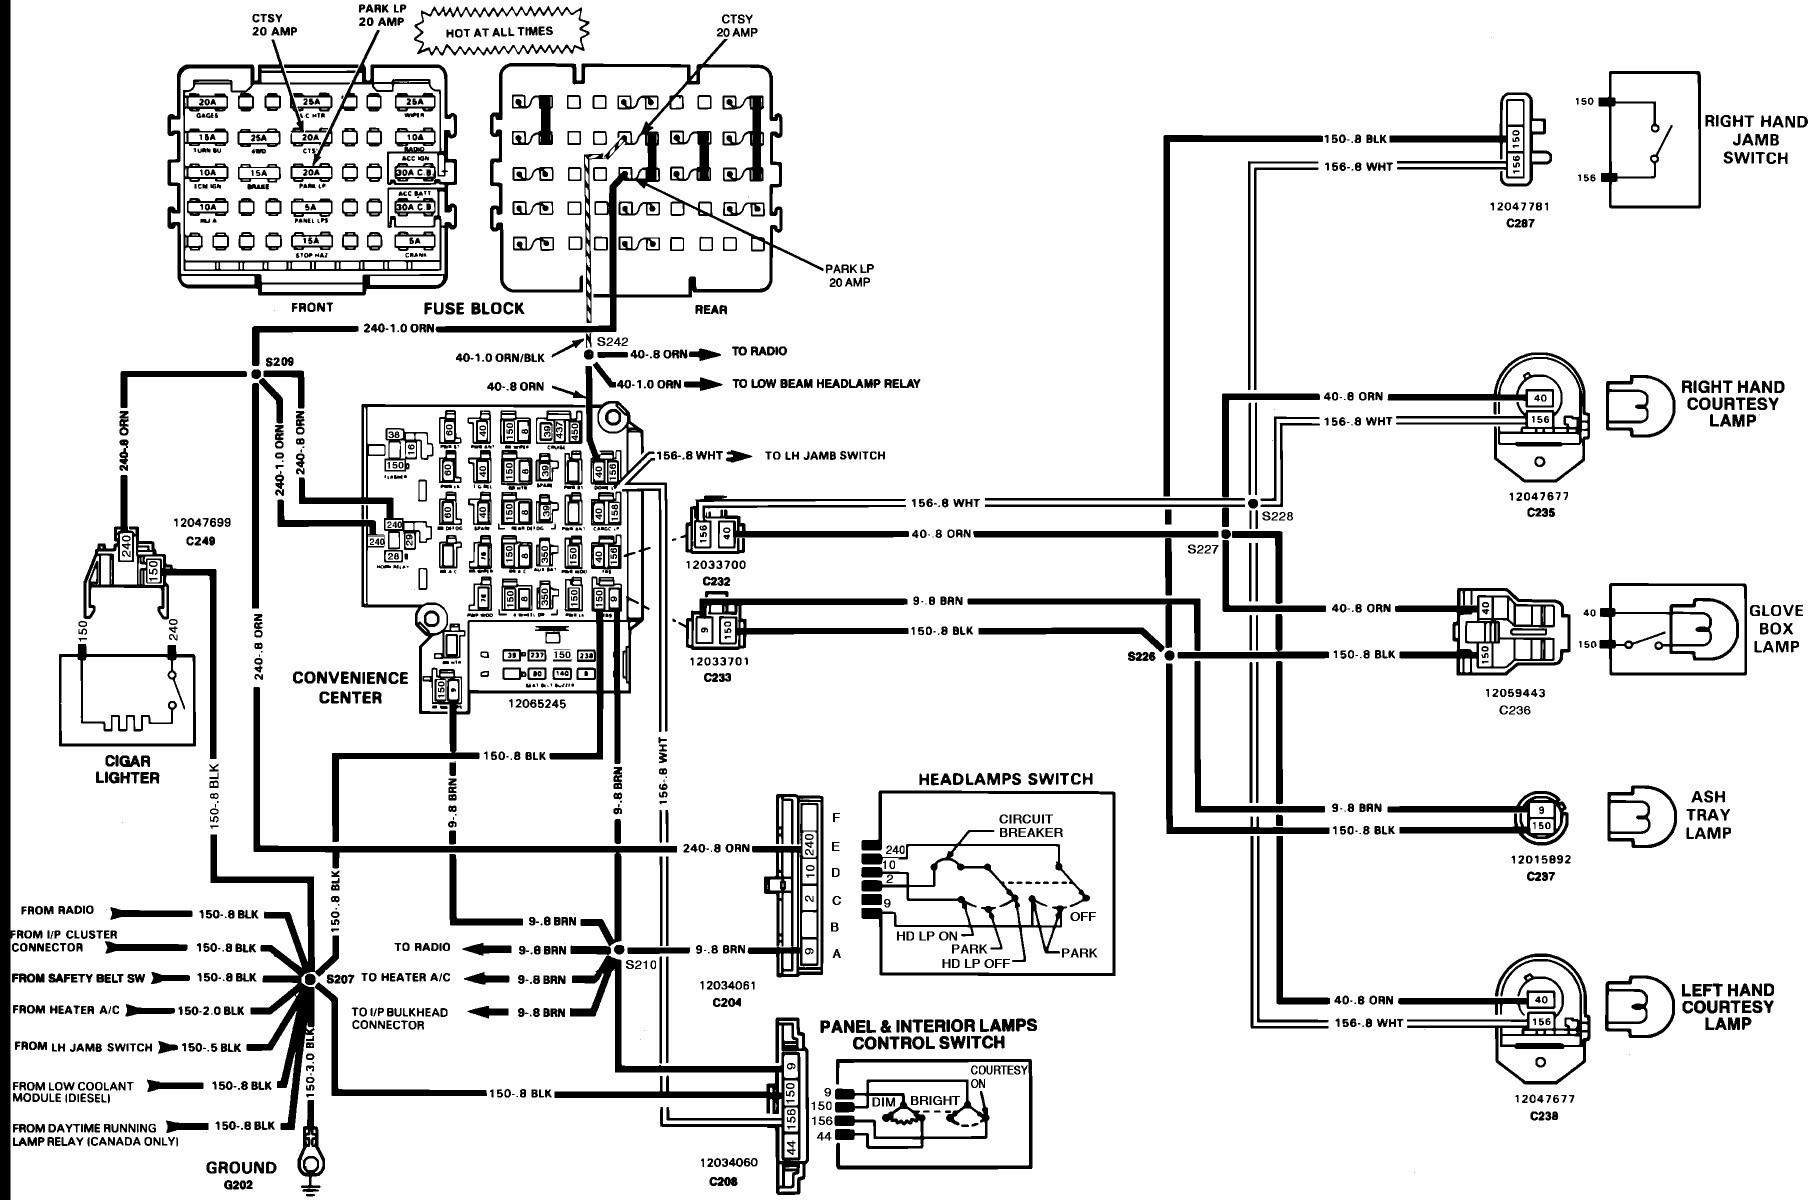 subaru wiring diagram secondary air valves | wiring diagram wiring diagram taco zone valves subaru wiring diagram secondary air valves